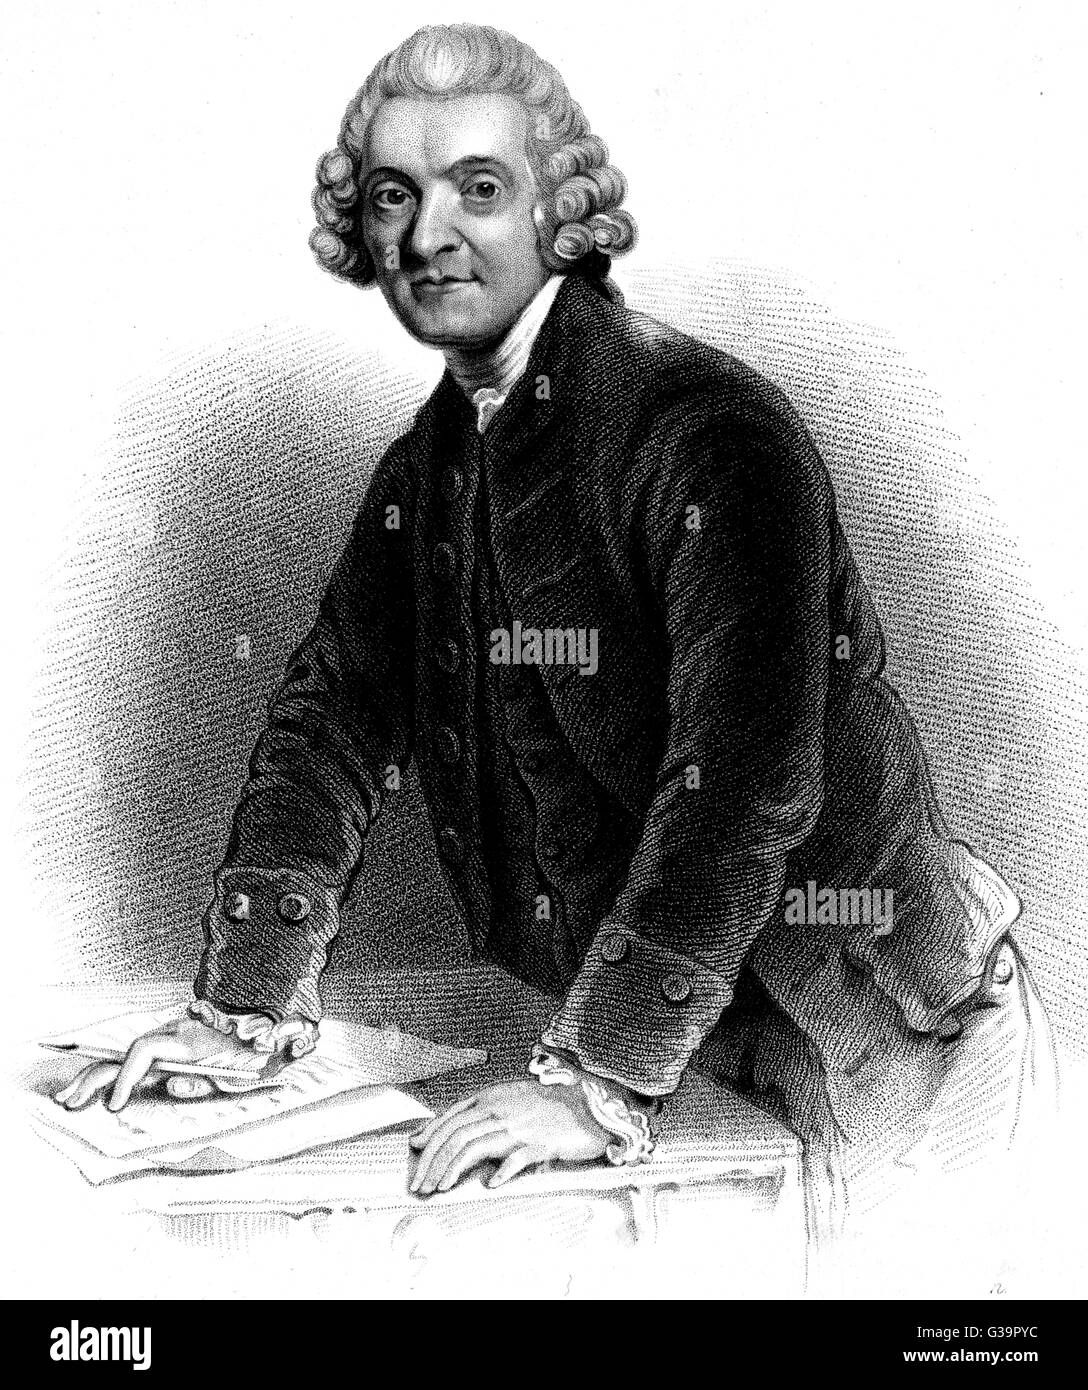 WILLIAM HUNTER  Anatomist and elder brother of  John Hunter.       Date: 1718 - 1783 - Stock Image